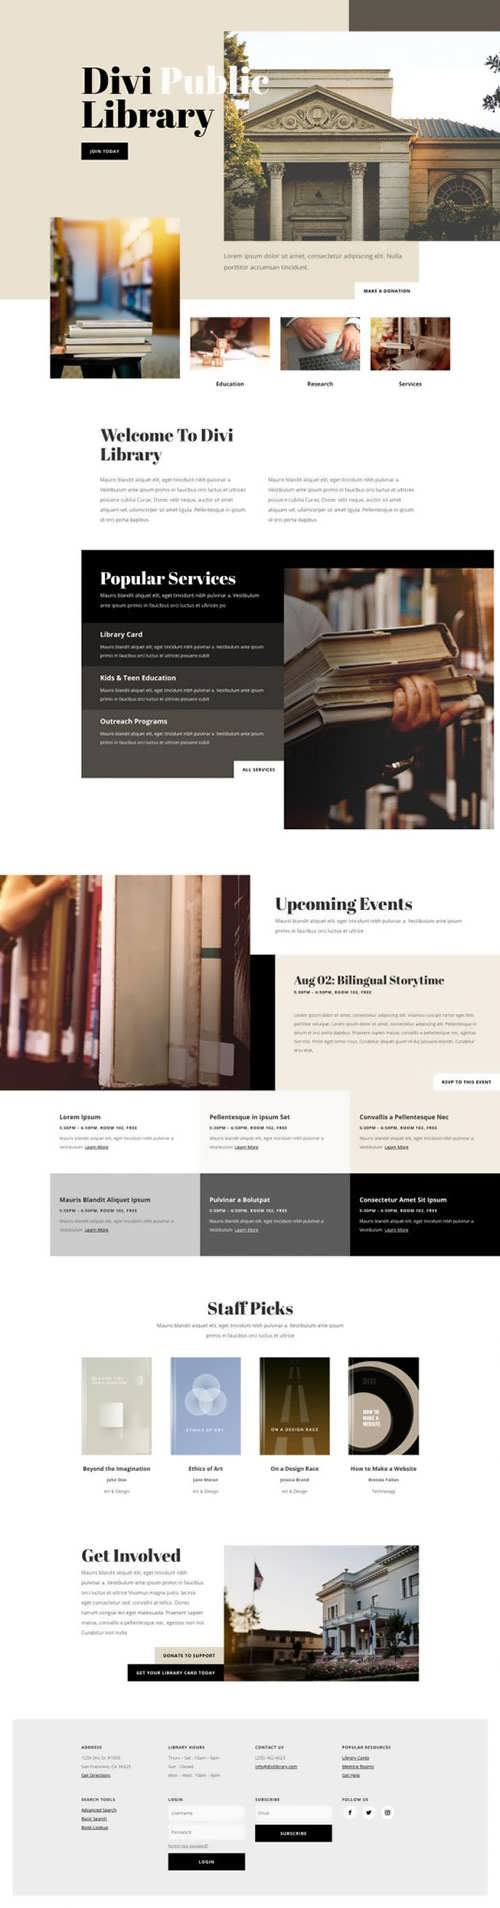 library landing page